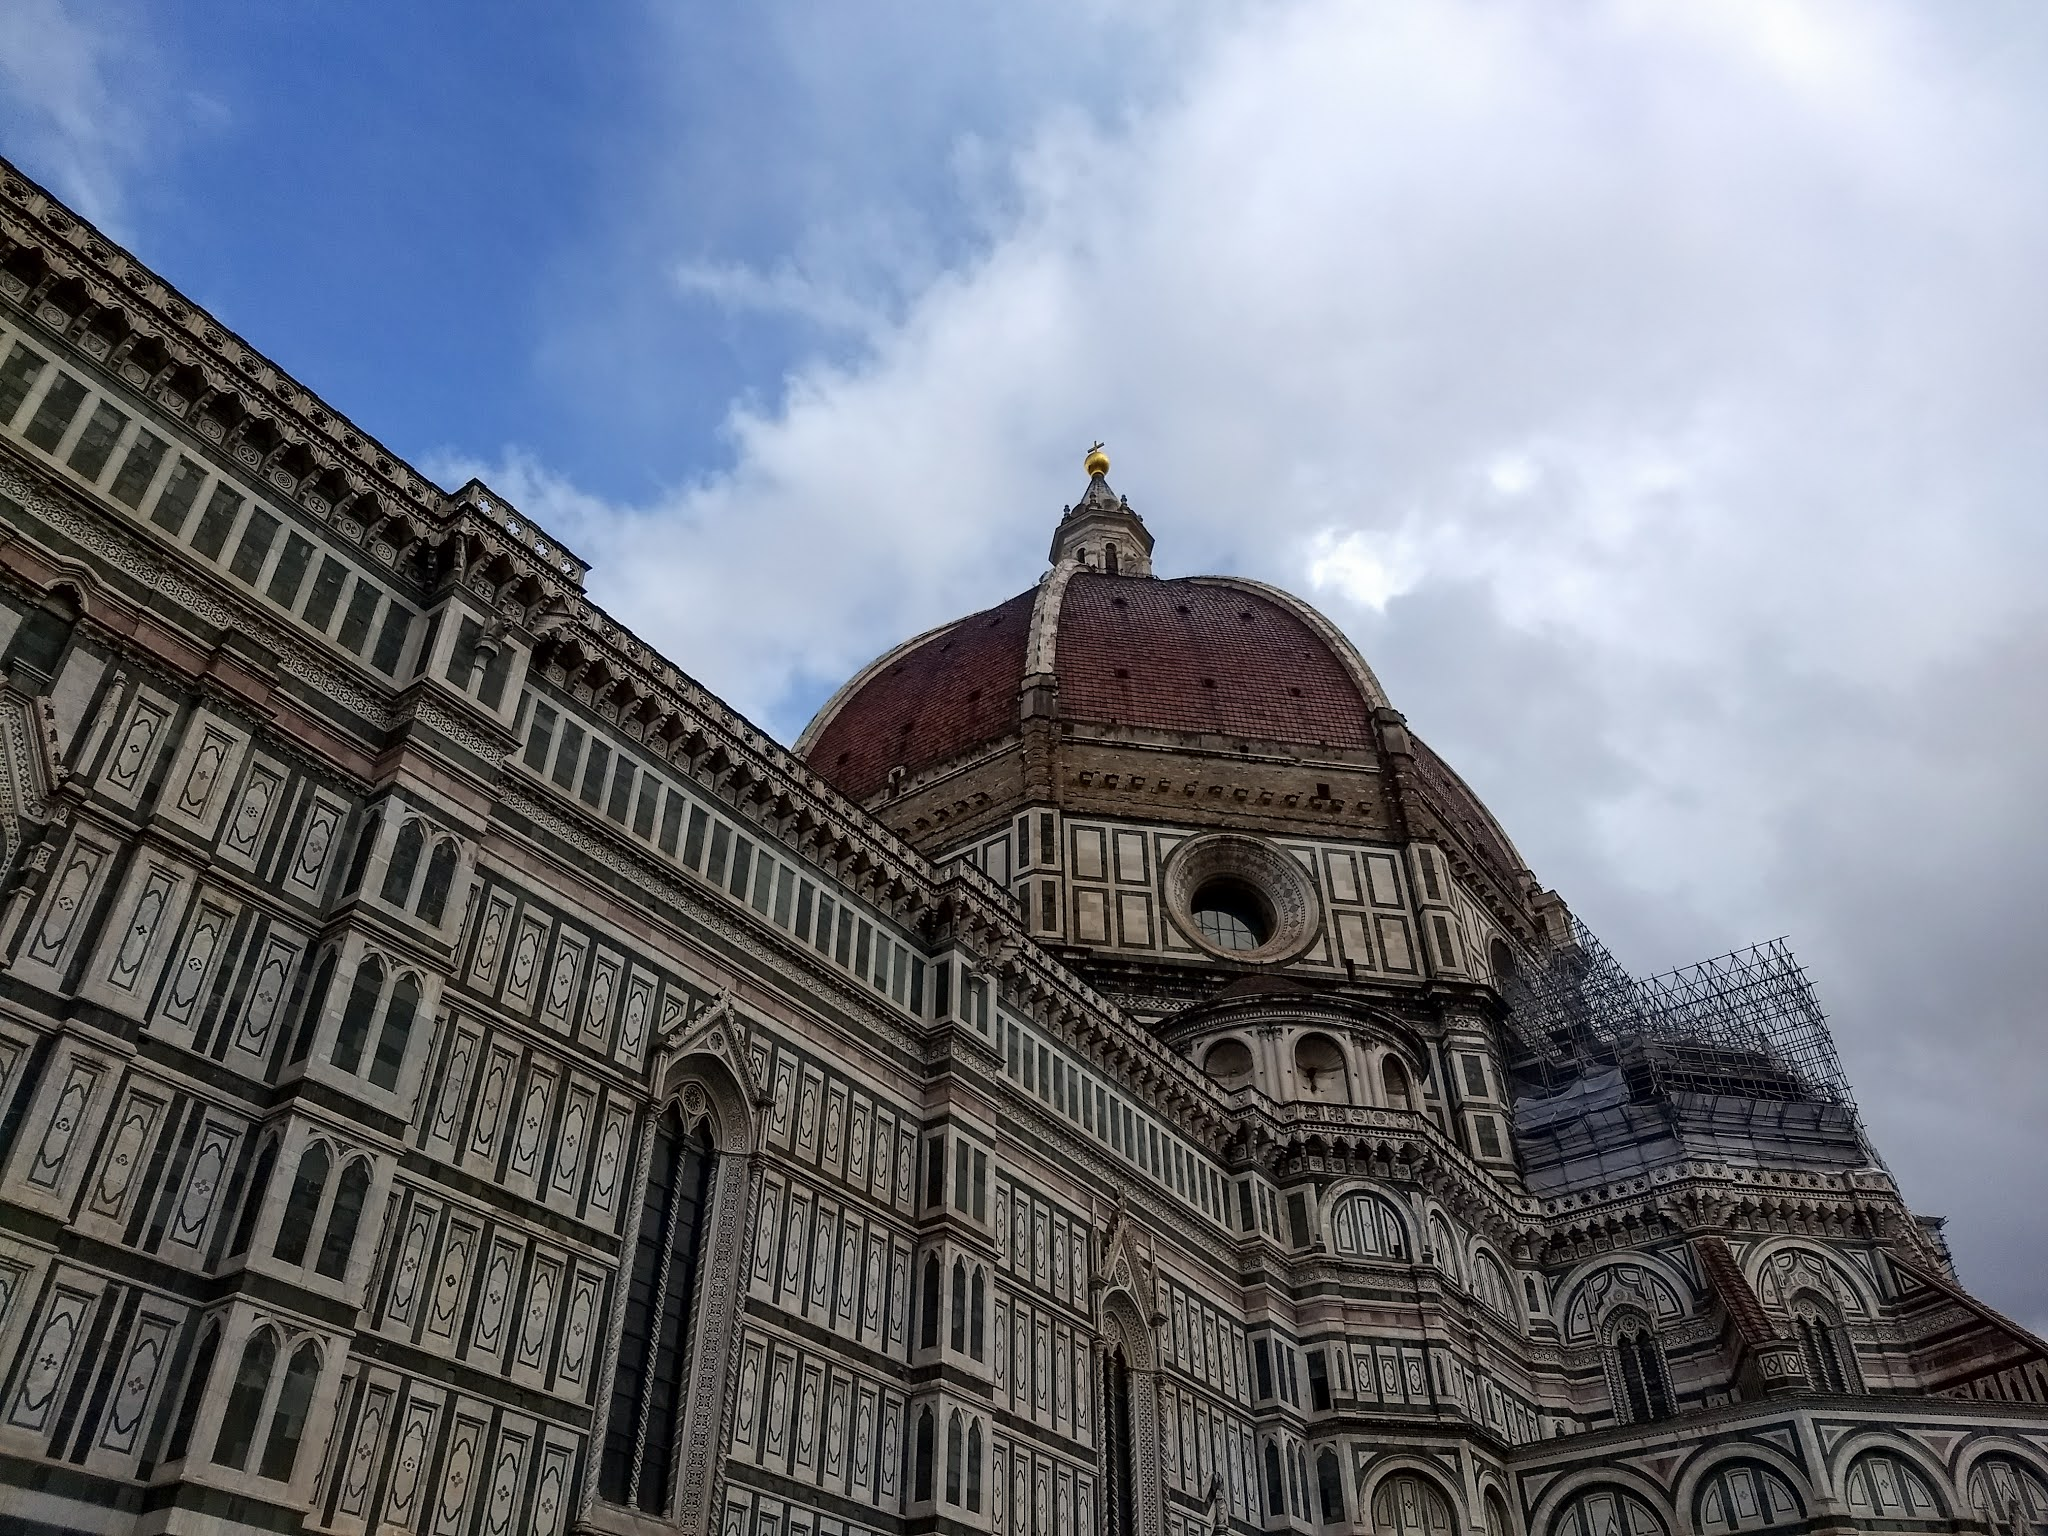 Scaffolding under the dome of the Florence Cathedral.